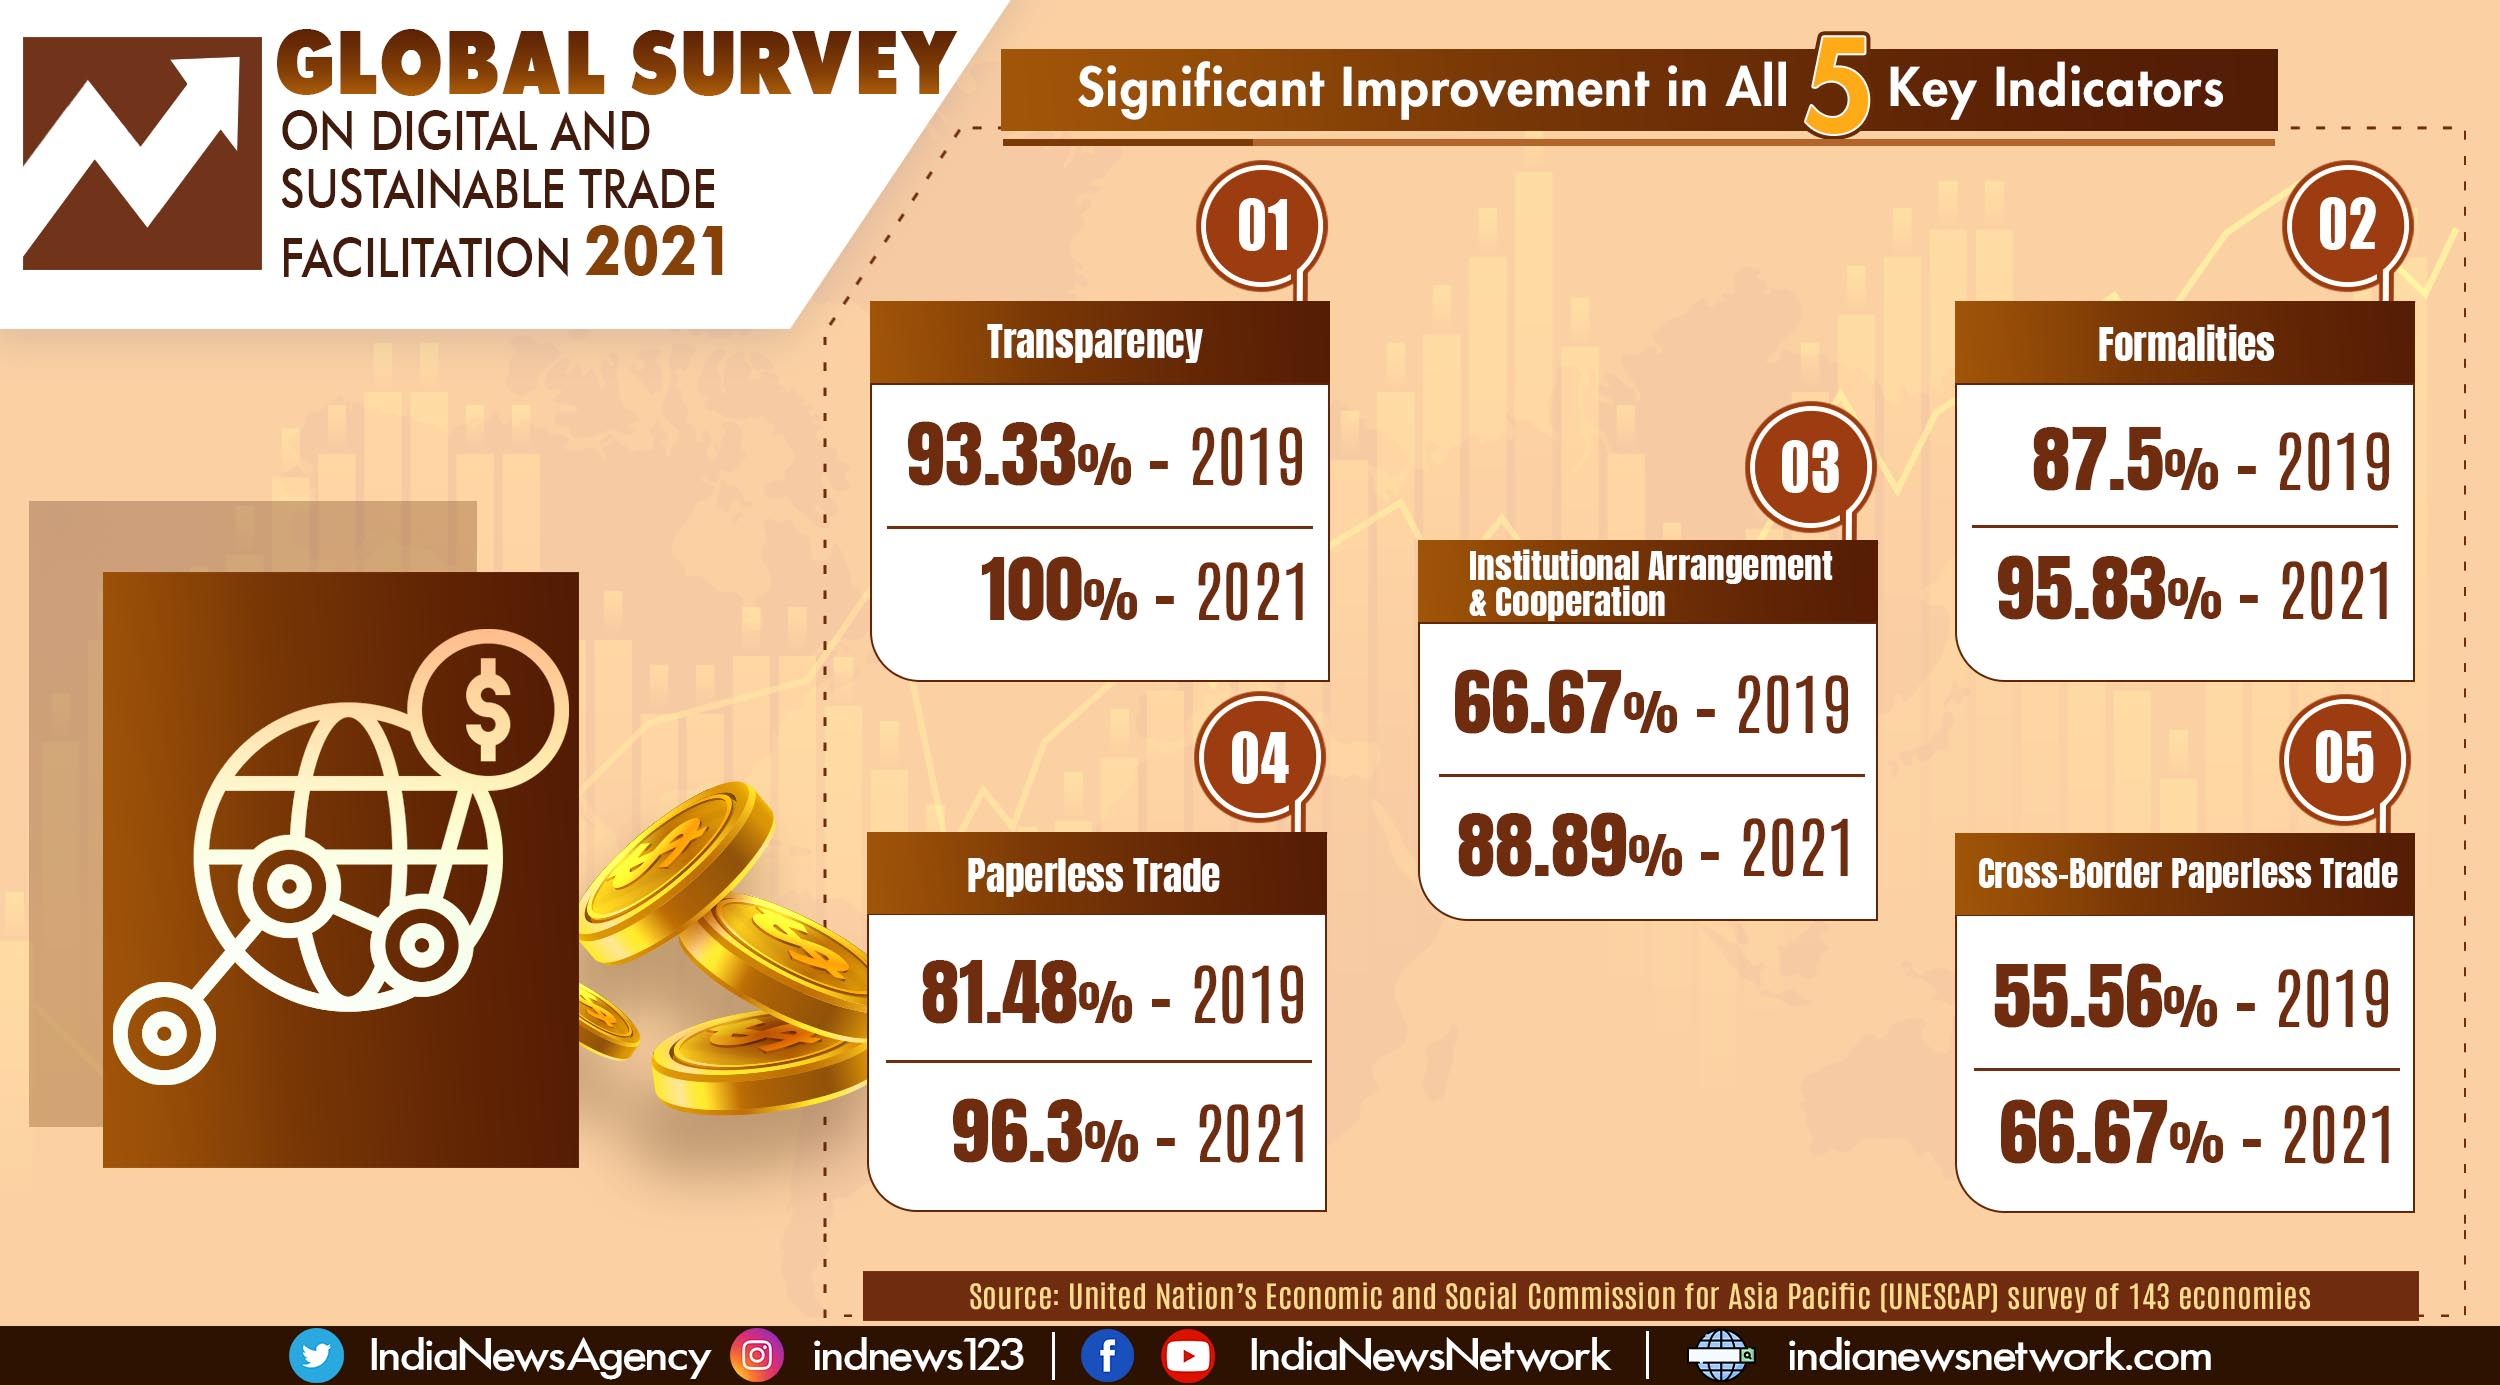 India's remarkable jump in UN survey on Digital and Sustainable Trade Facilitation 2021